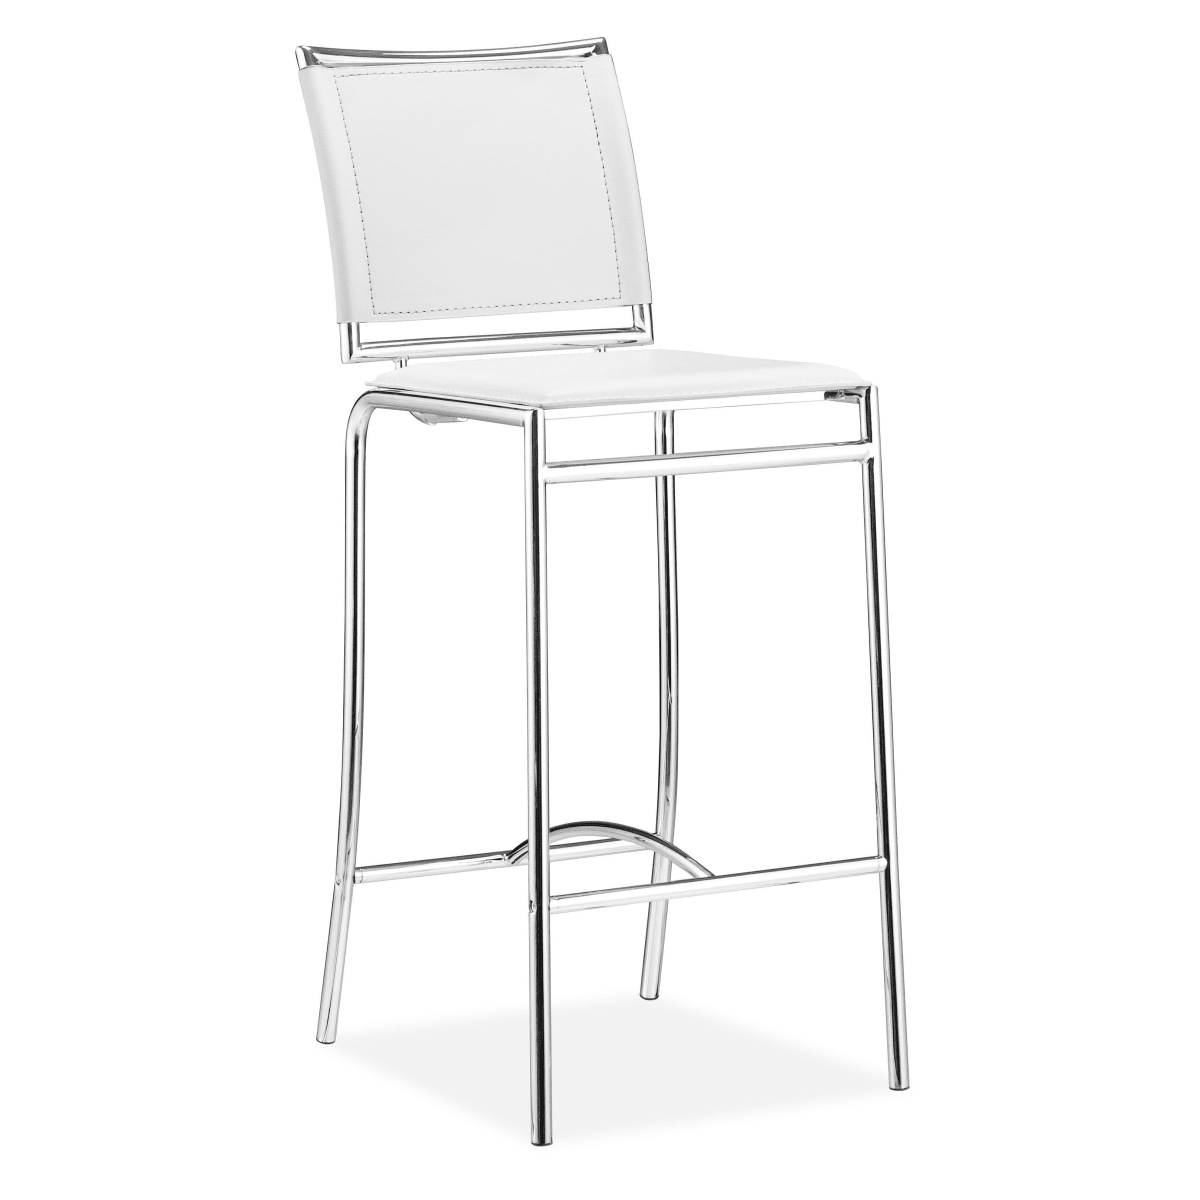 Pictures On Zuo Modern Outdoor Bar Stools